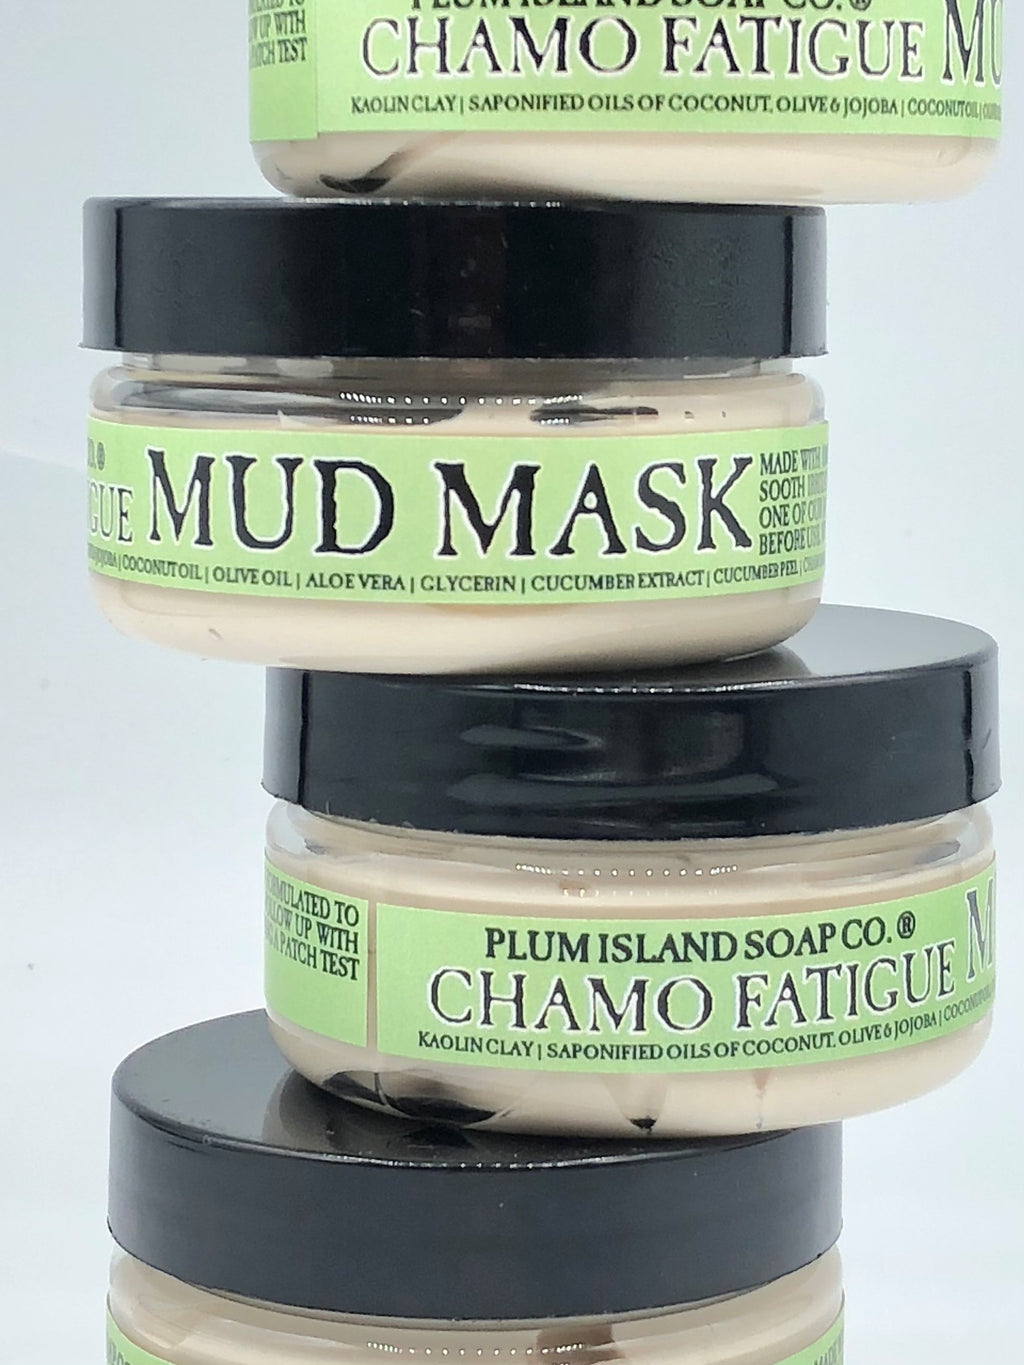 Chamo Fatigue Mud Mask